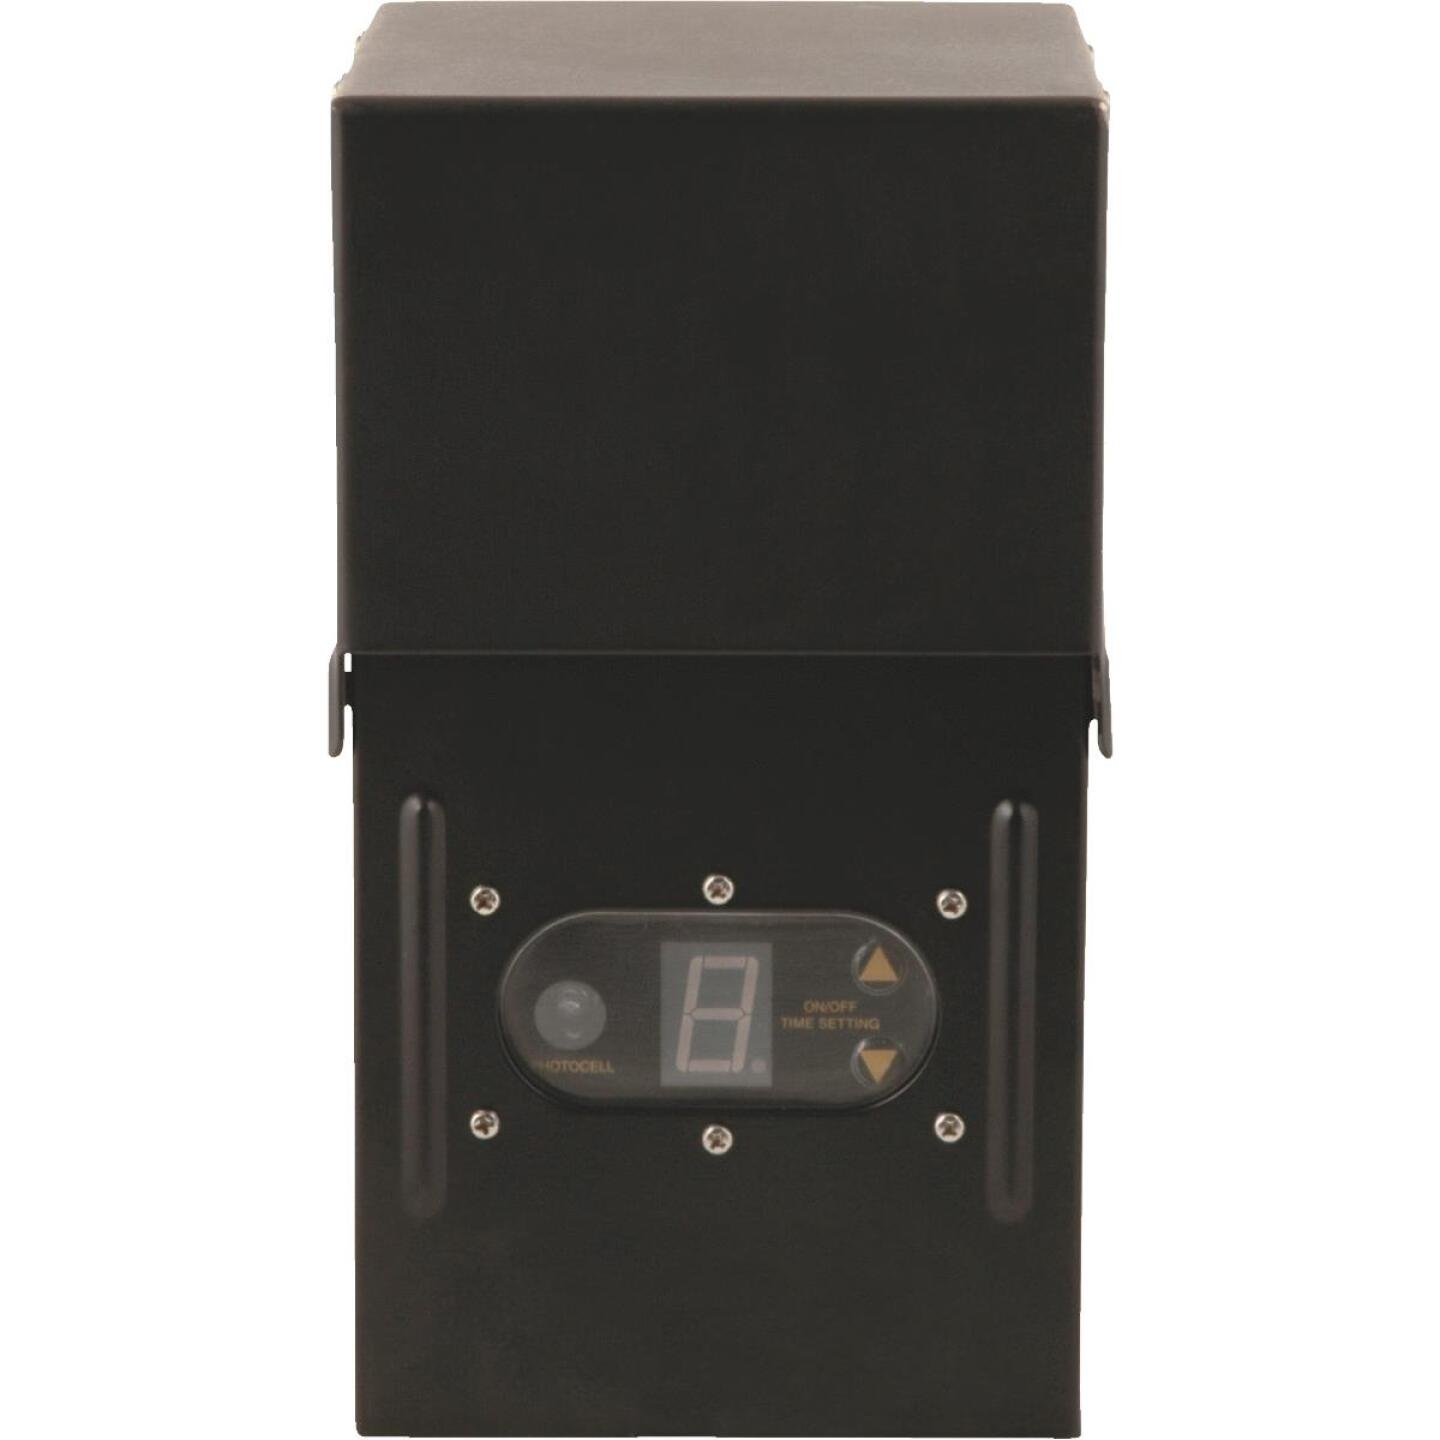 Moonrays 200W Black Low Voltage Control Box with Digital Photocell Image 1